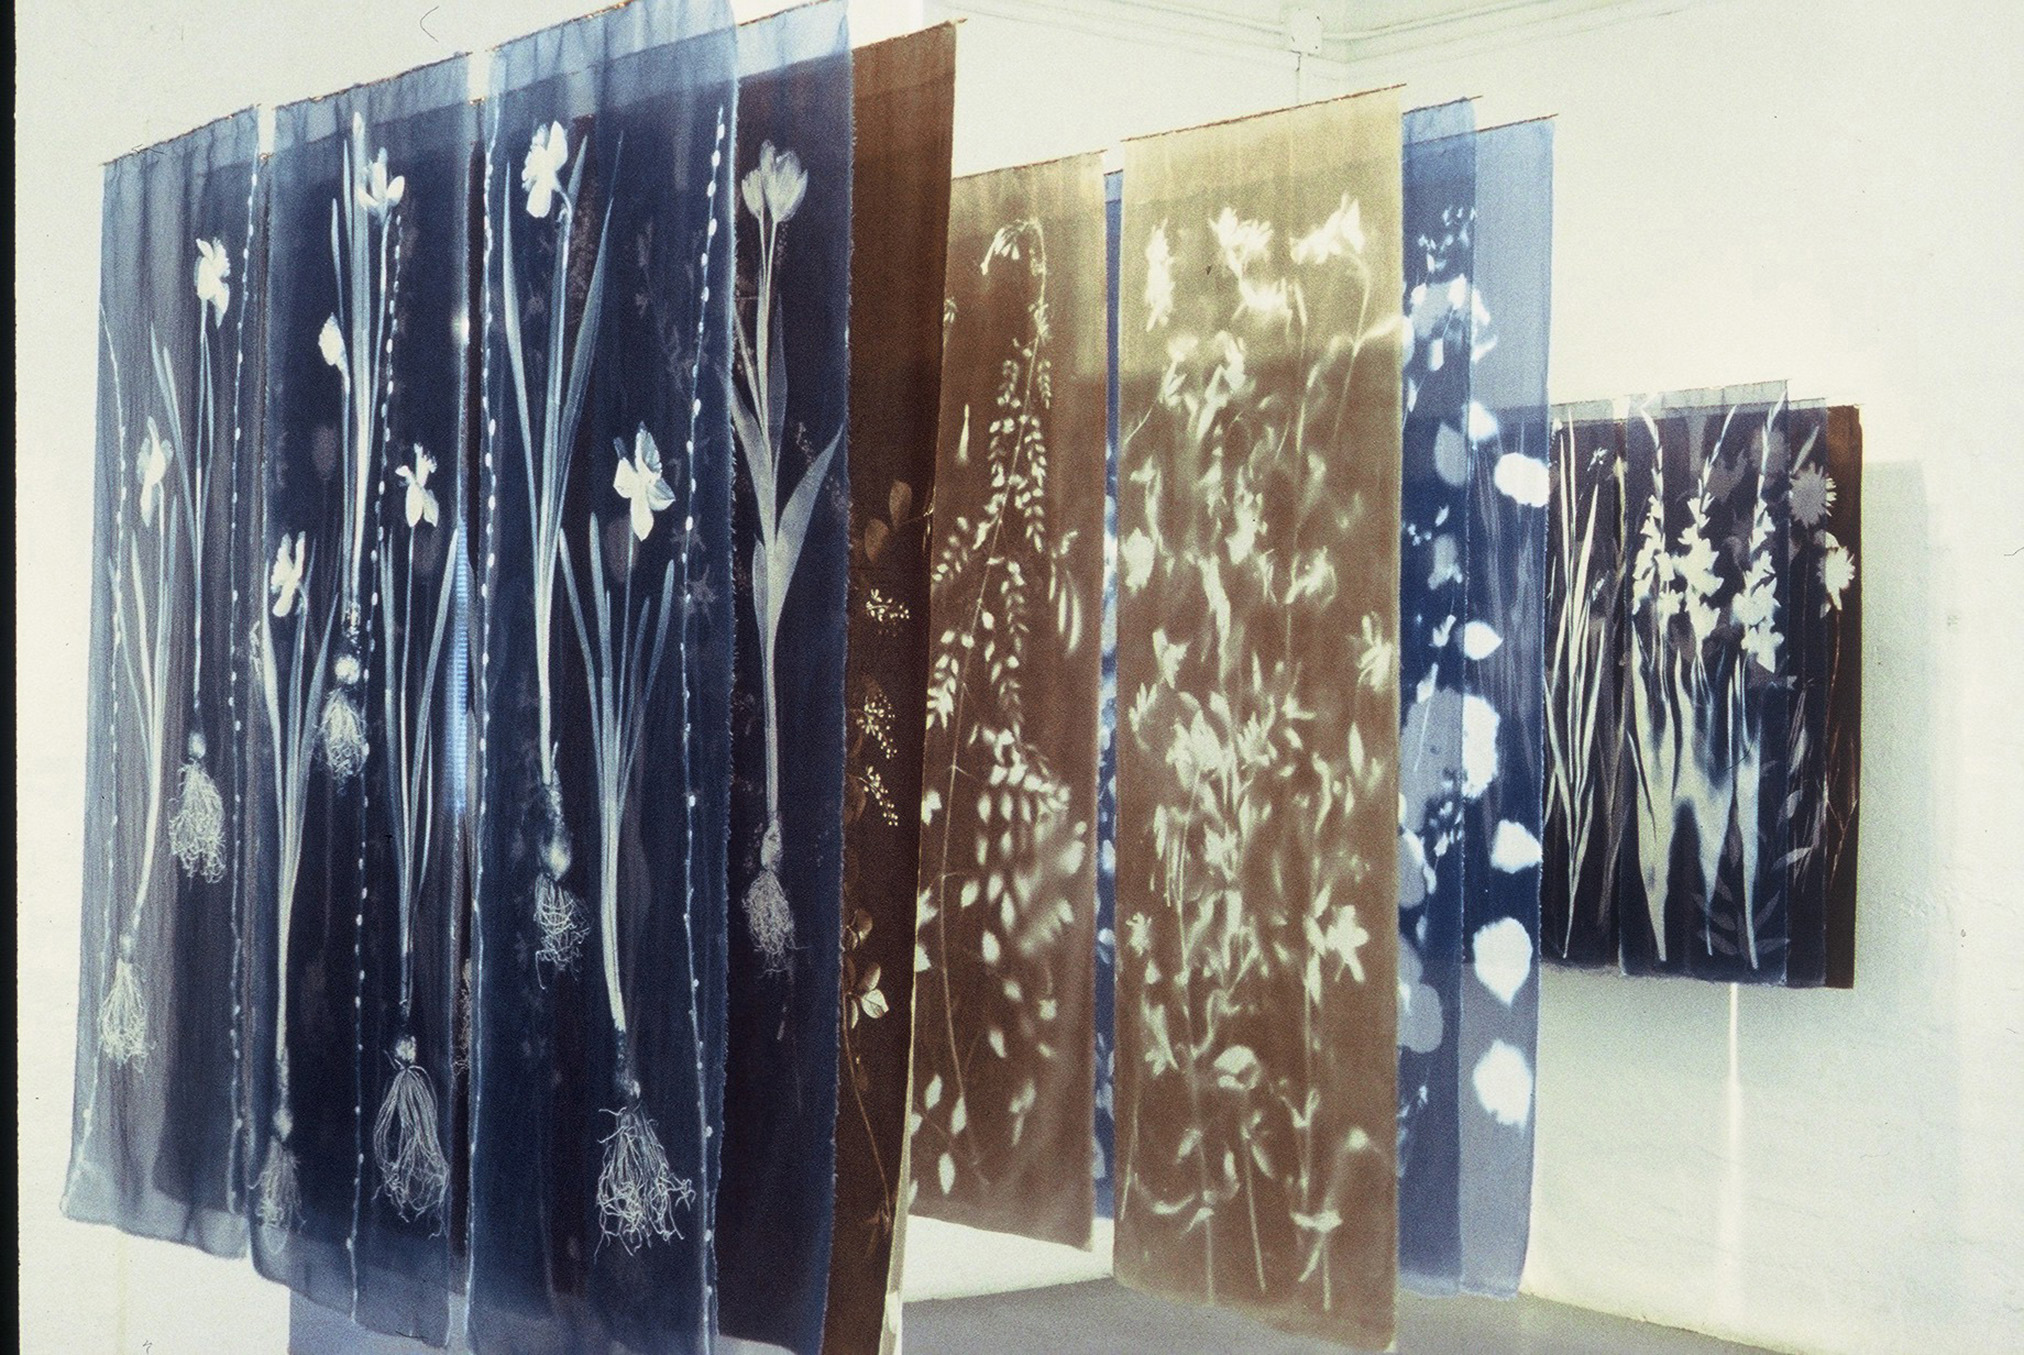 Shadow Gardens  (installed 2004 at Visual Arts Centre of Clarington), cyanotype and van dyke on silk organza. Courtesy of the artist Sally Ayre.